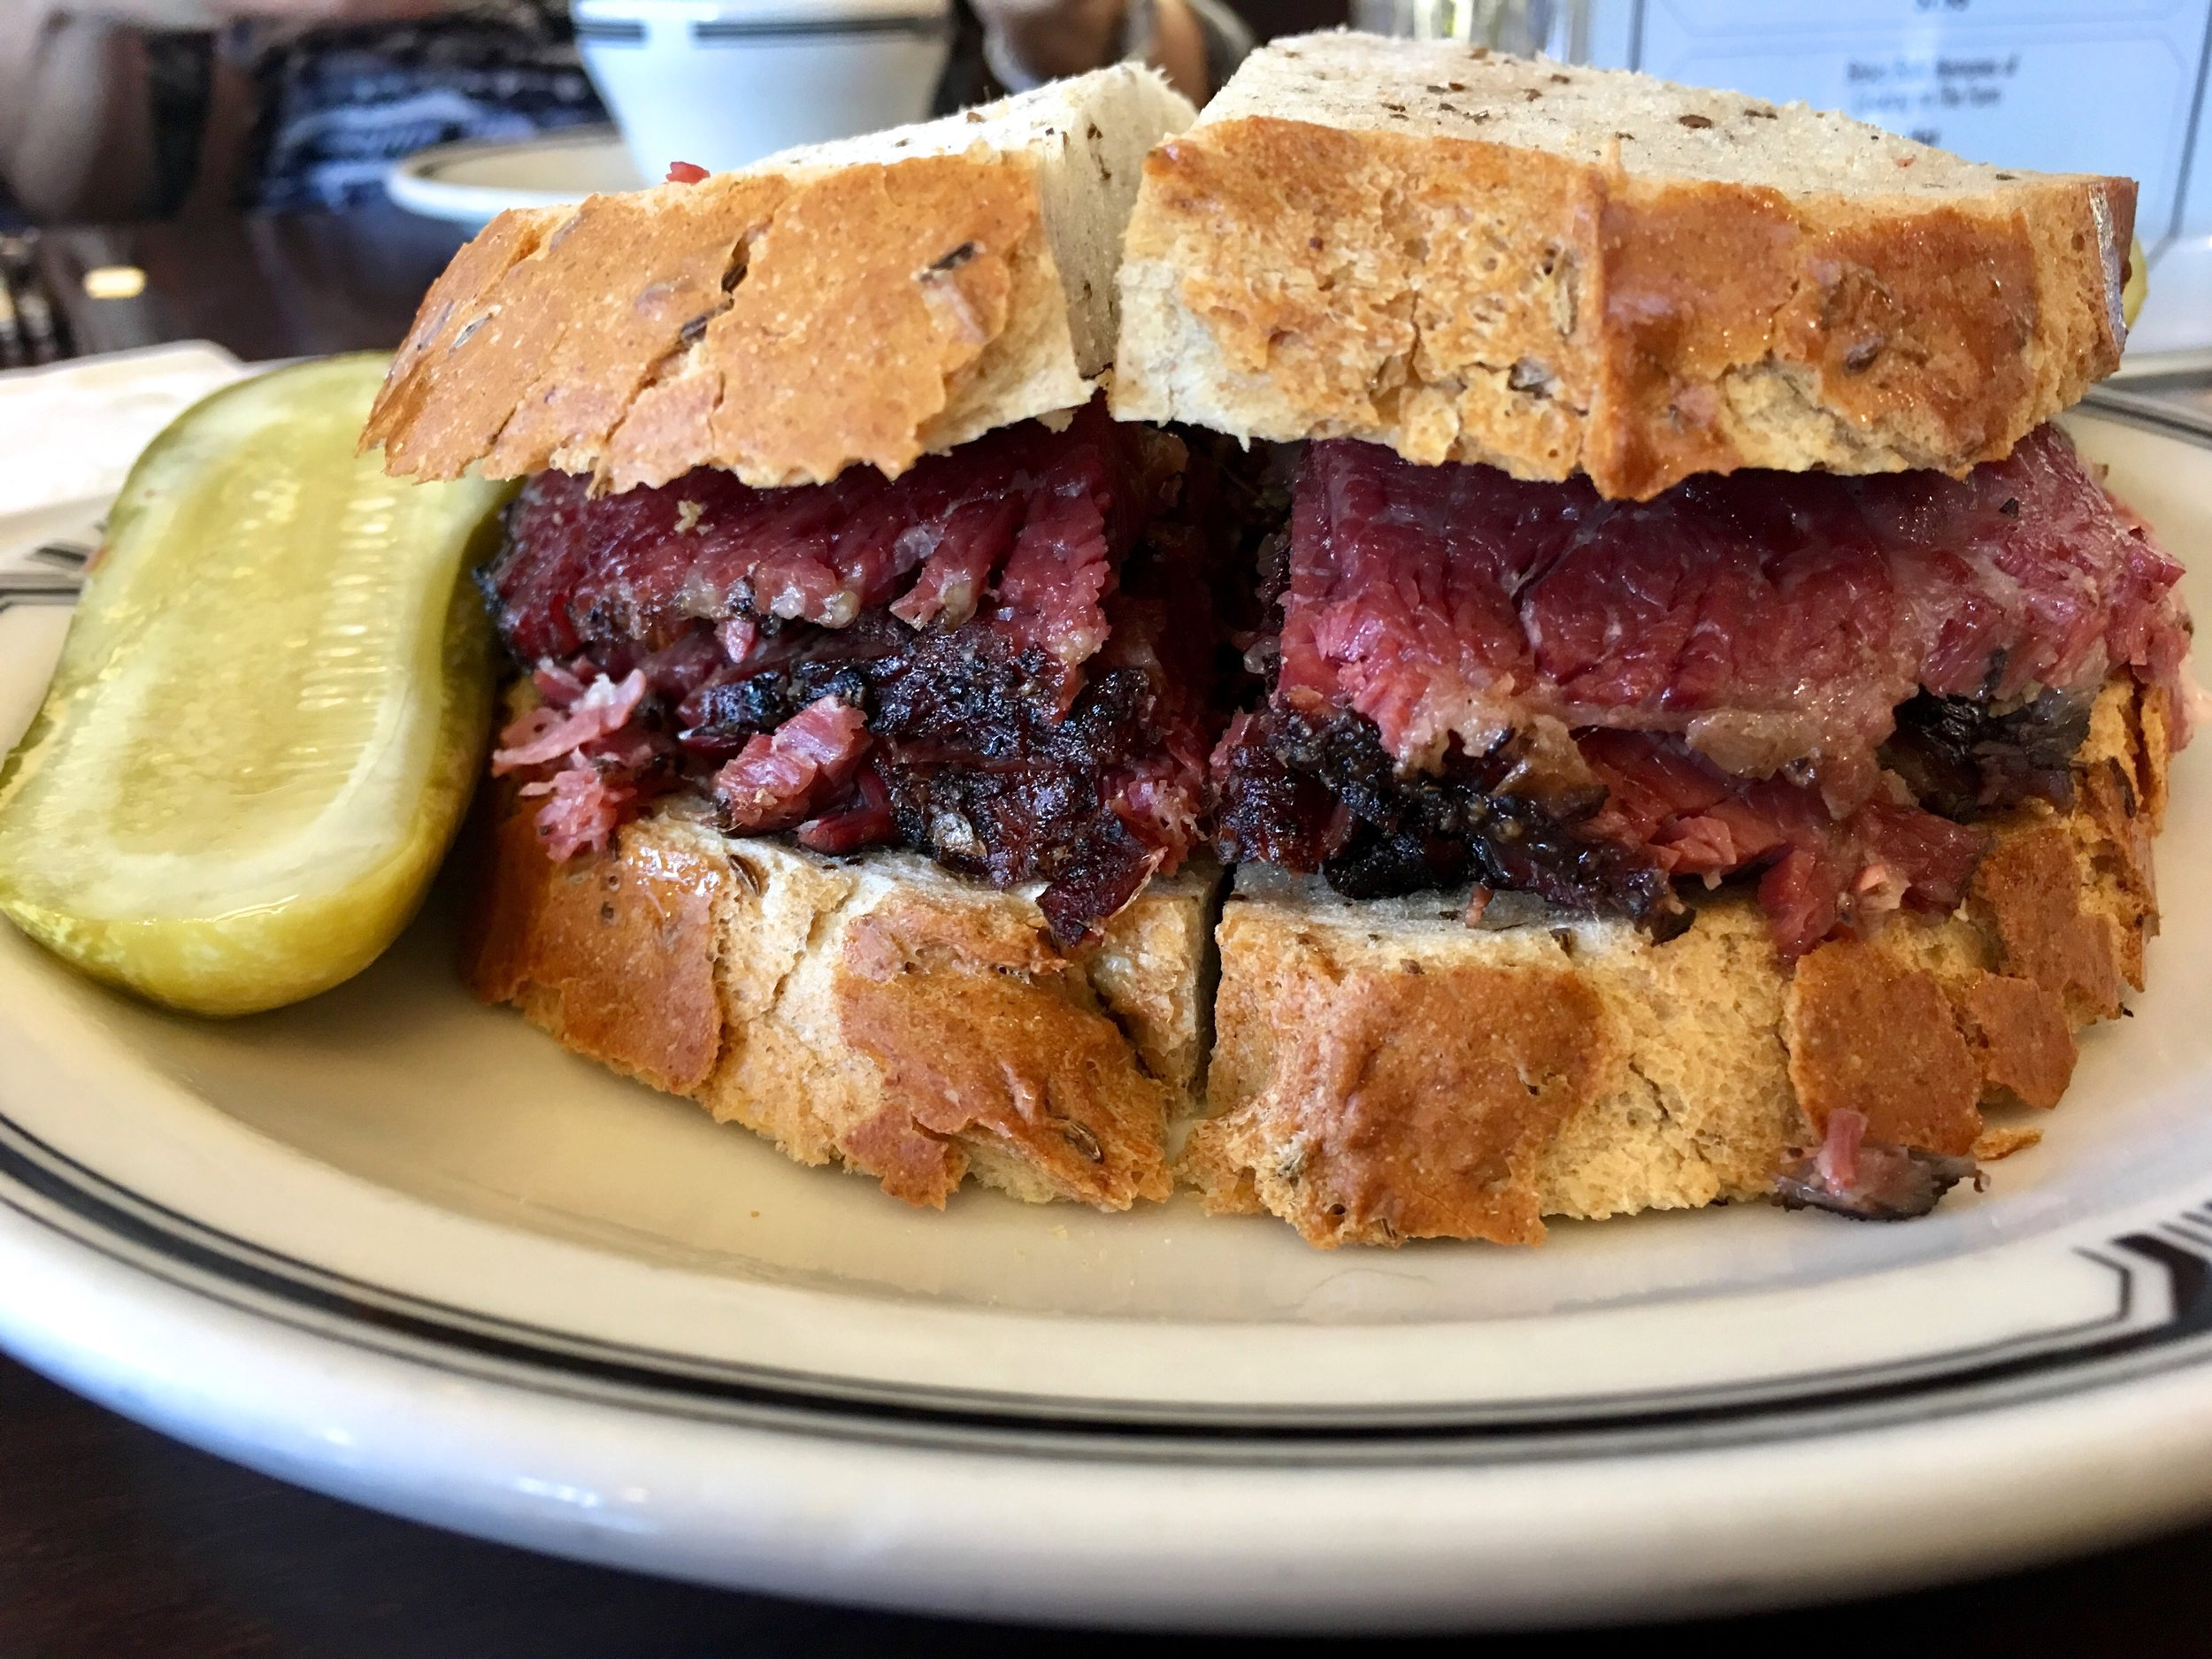 Pastrami on rye at langer's Deli